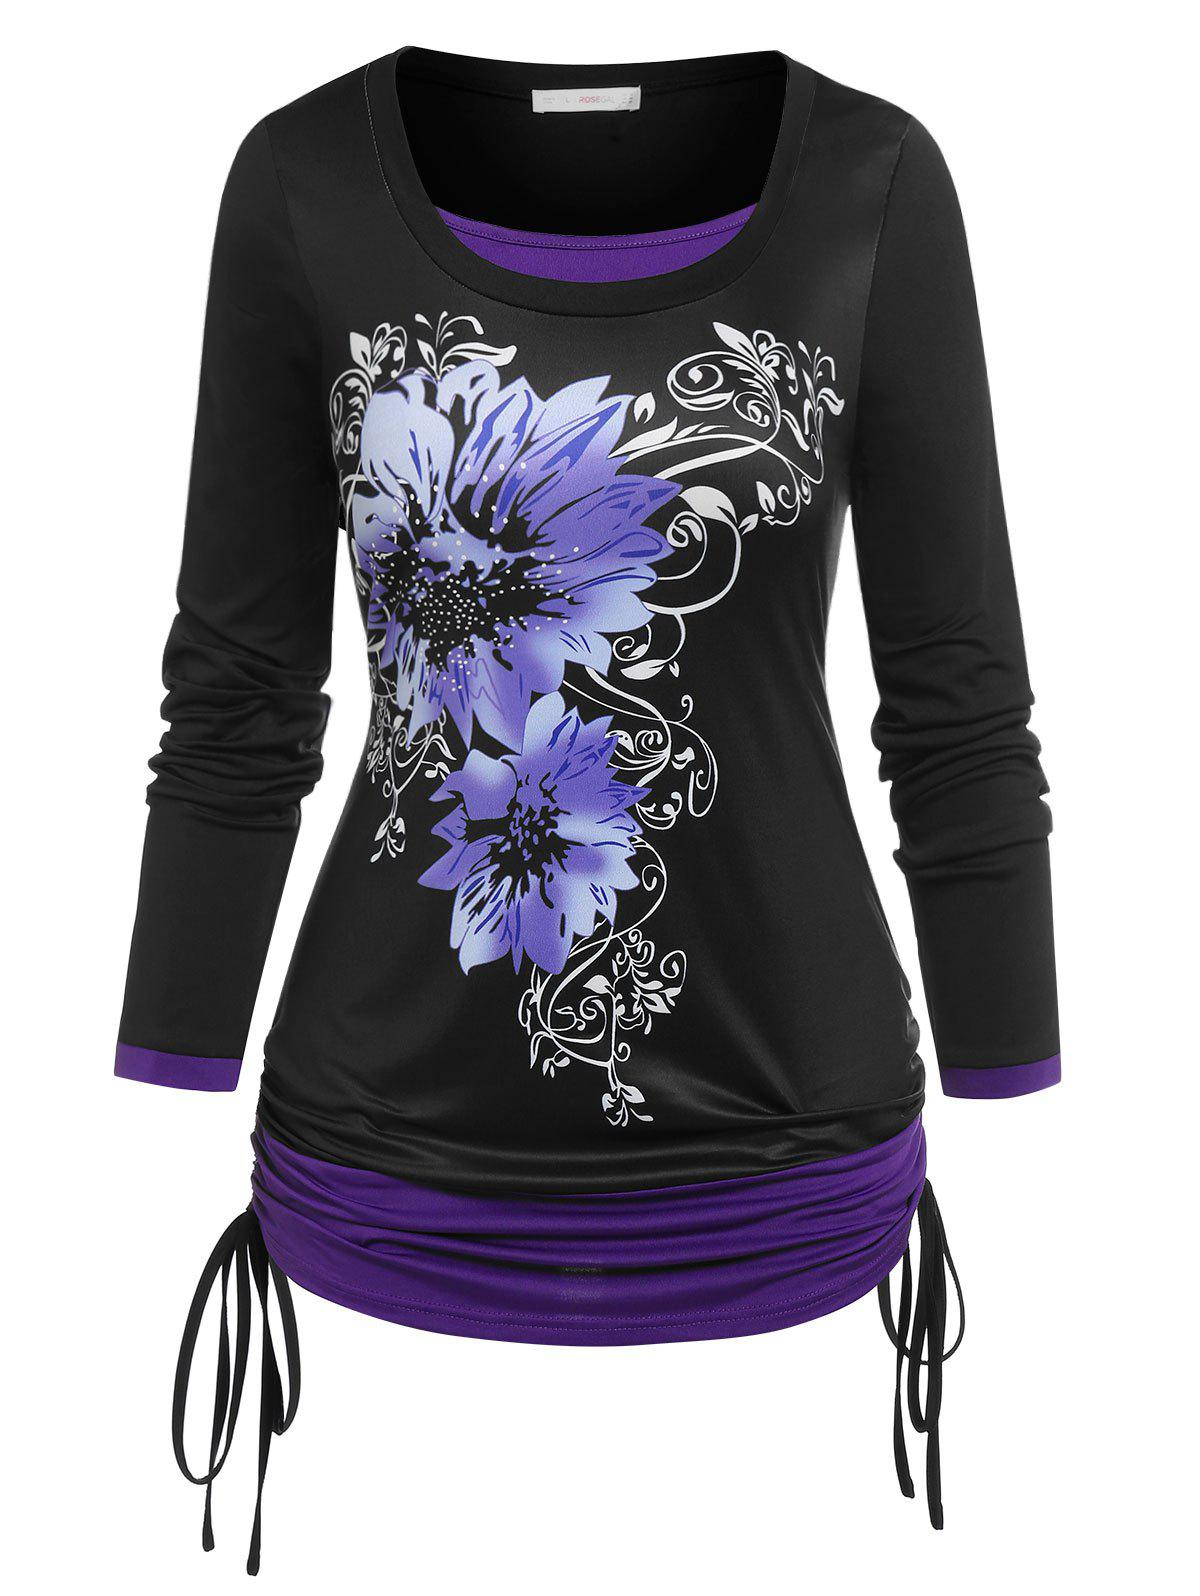 Plus Size Floral Print Cinched 2 in 1 Tee - BLACK 5X